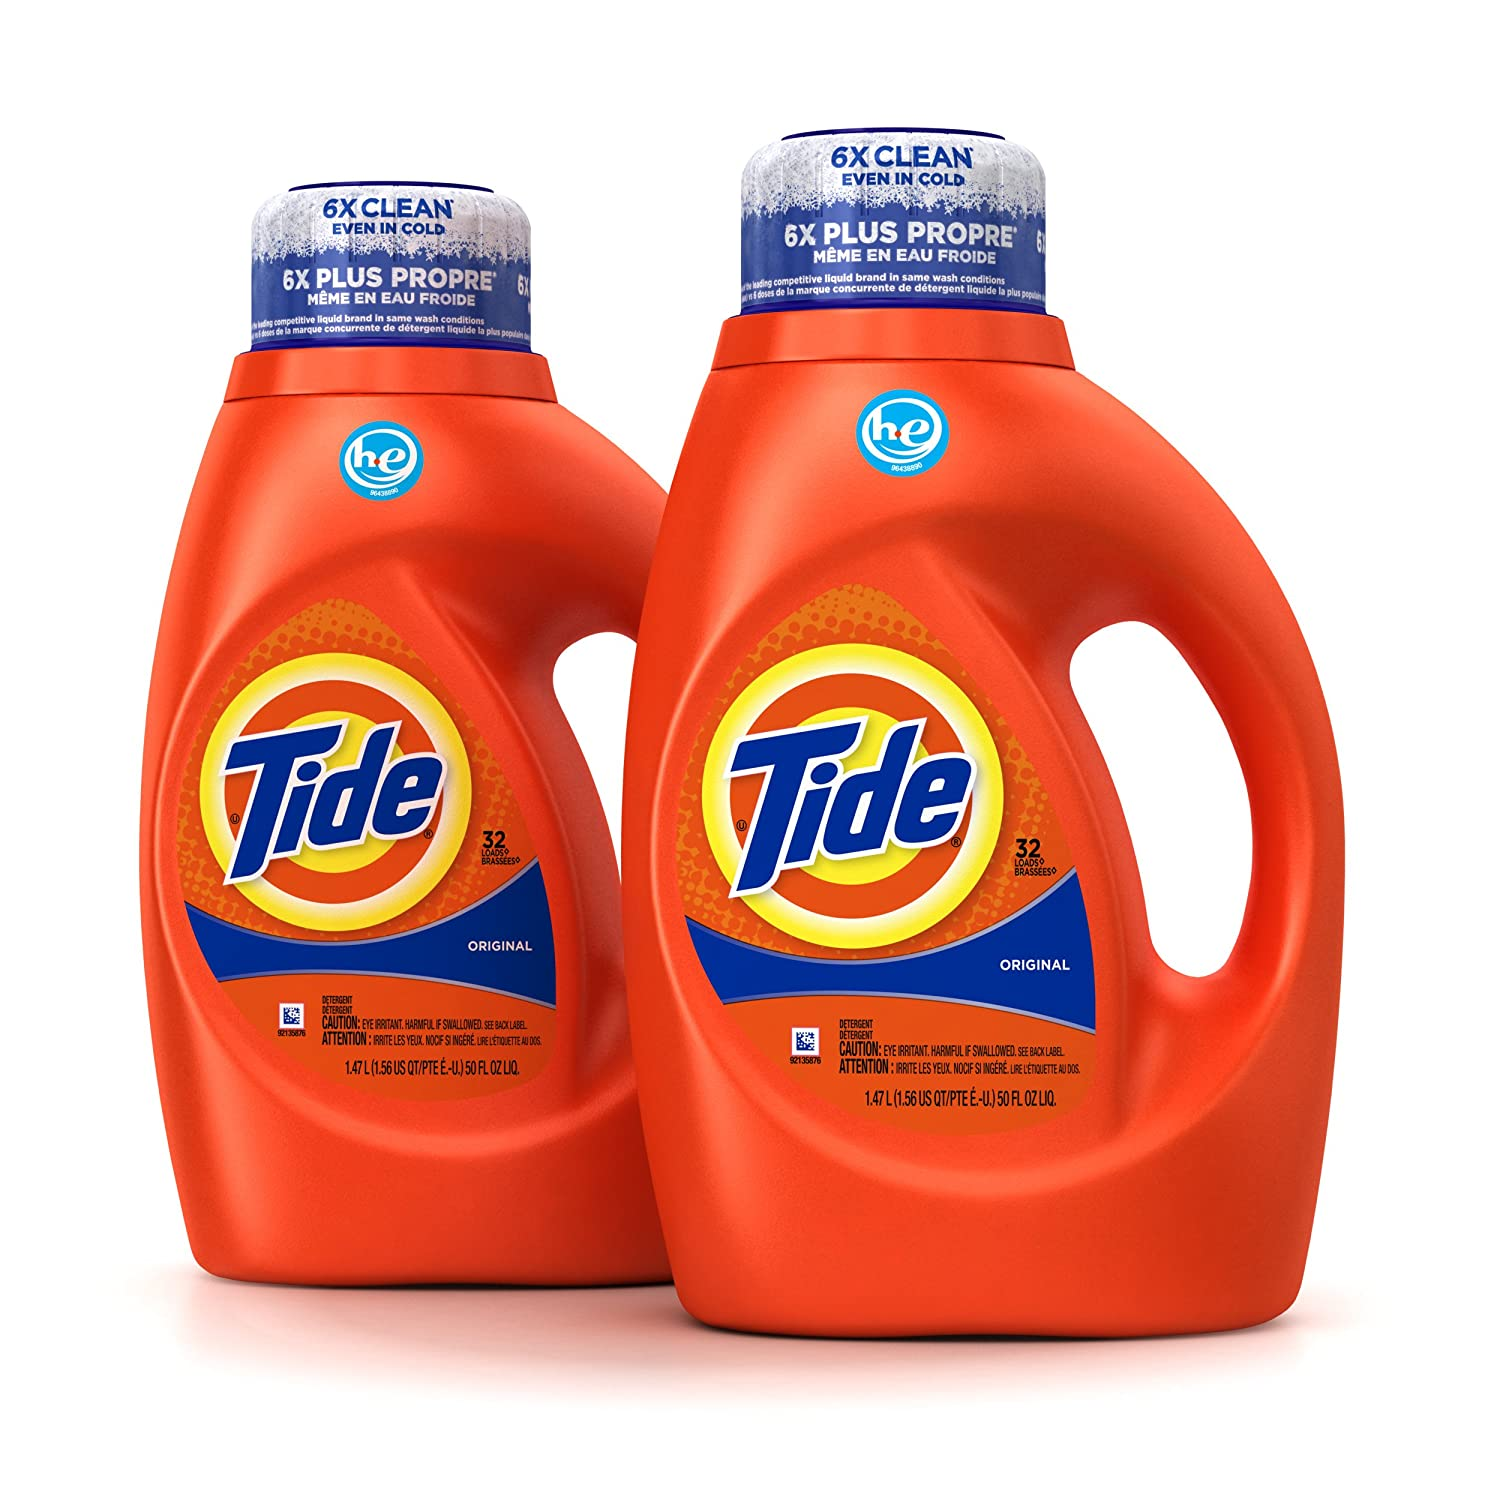 How Much He Detergent To Use Amazoncom Tide Original Scent He Turbo Clean Liquid Laundry